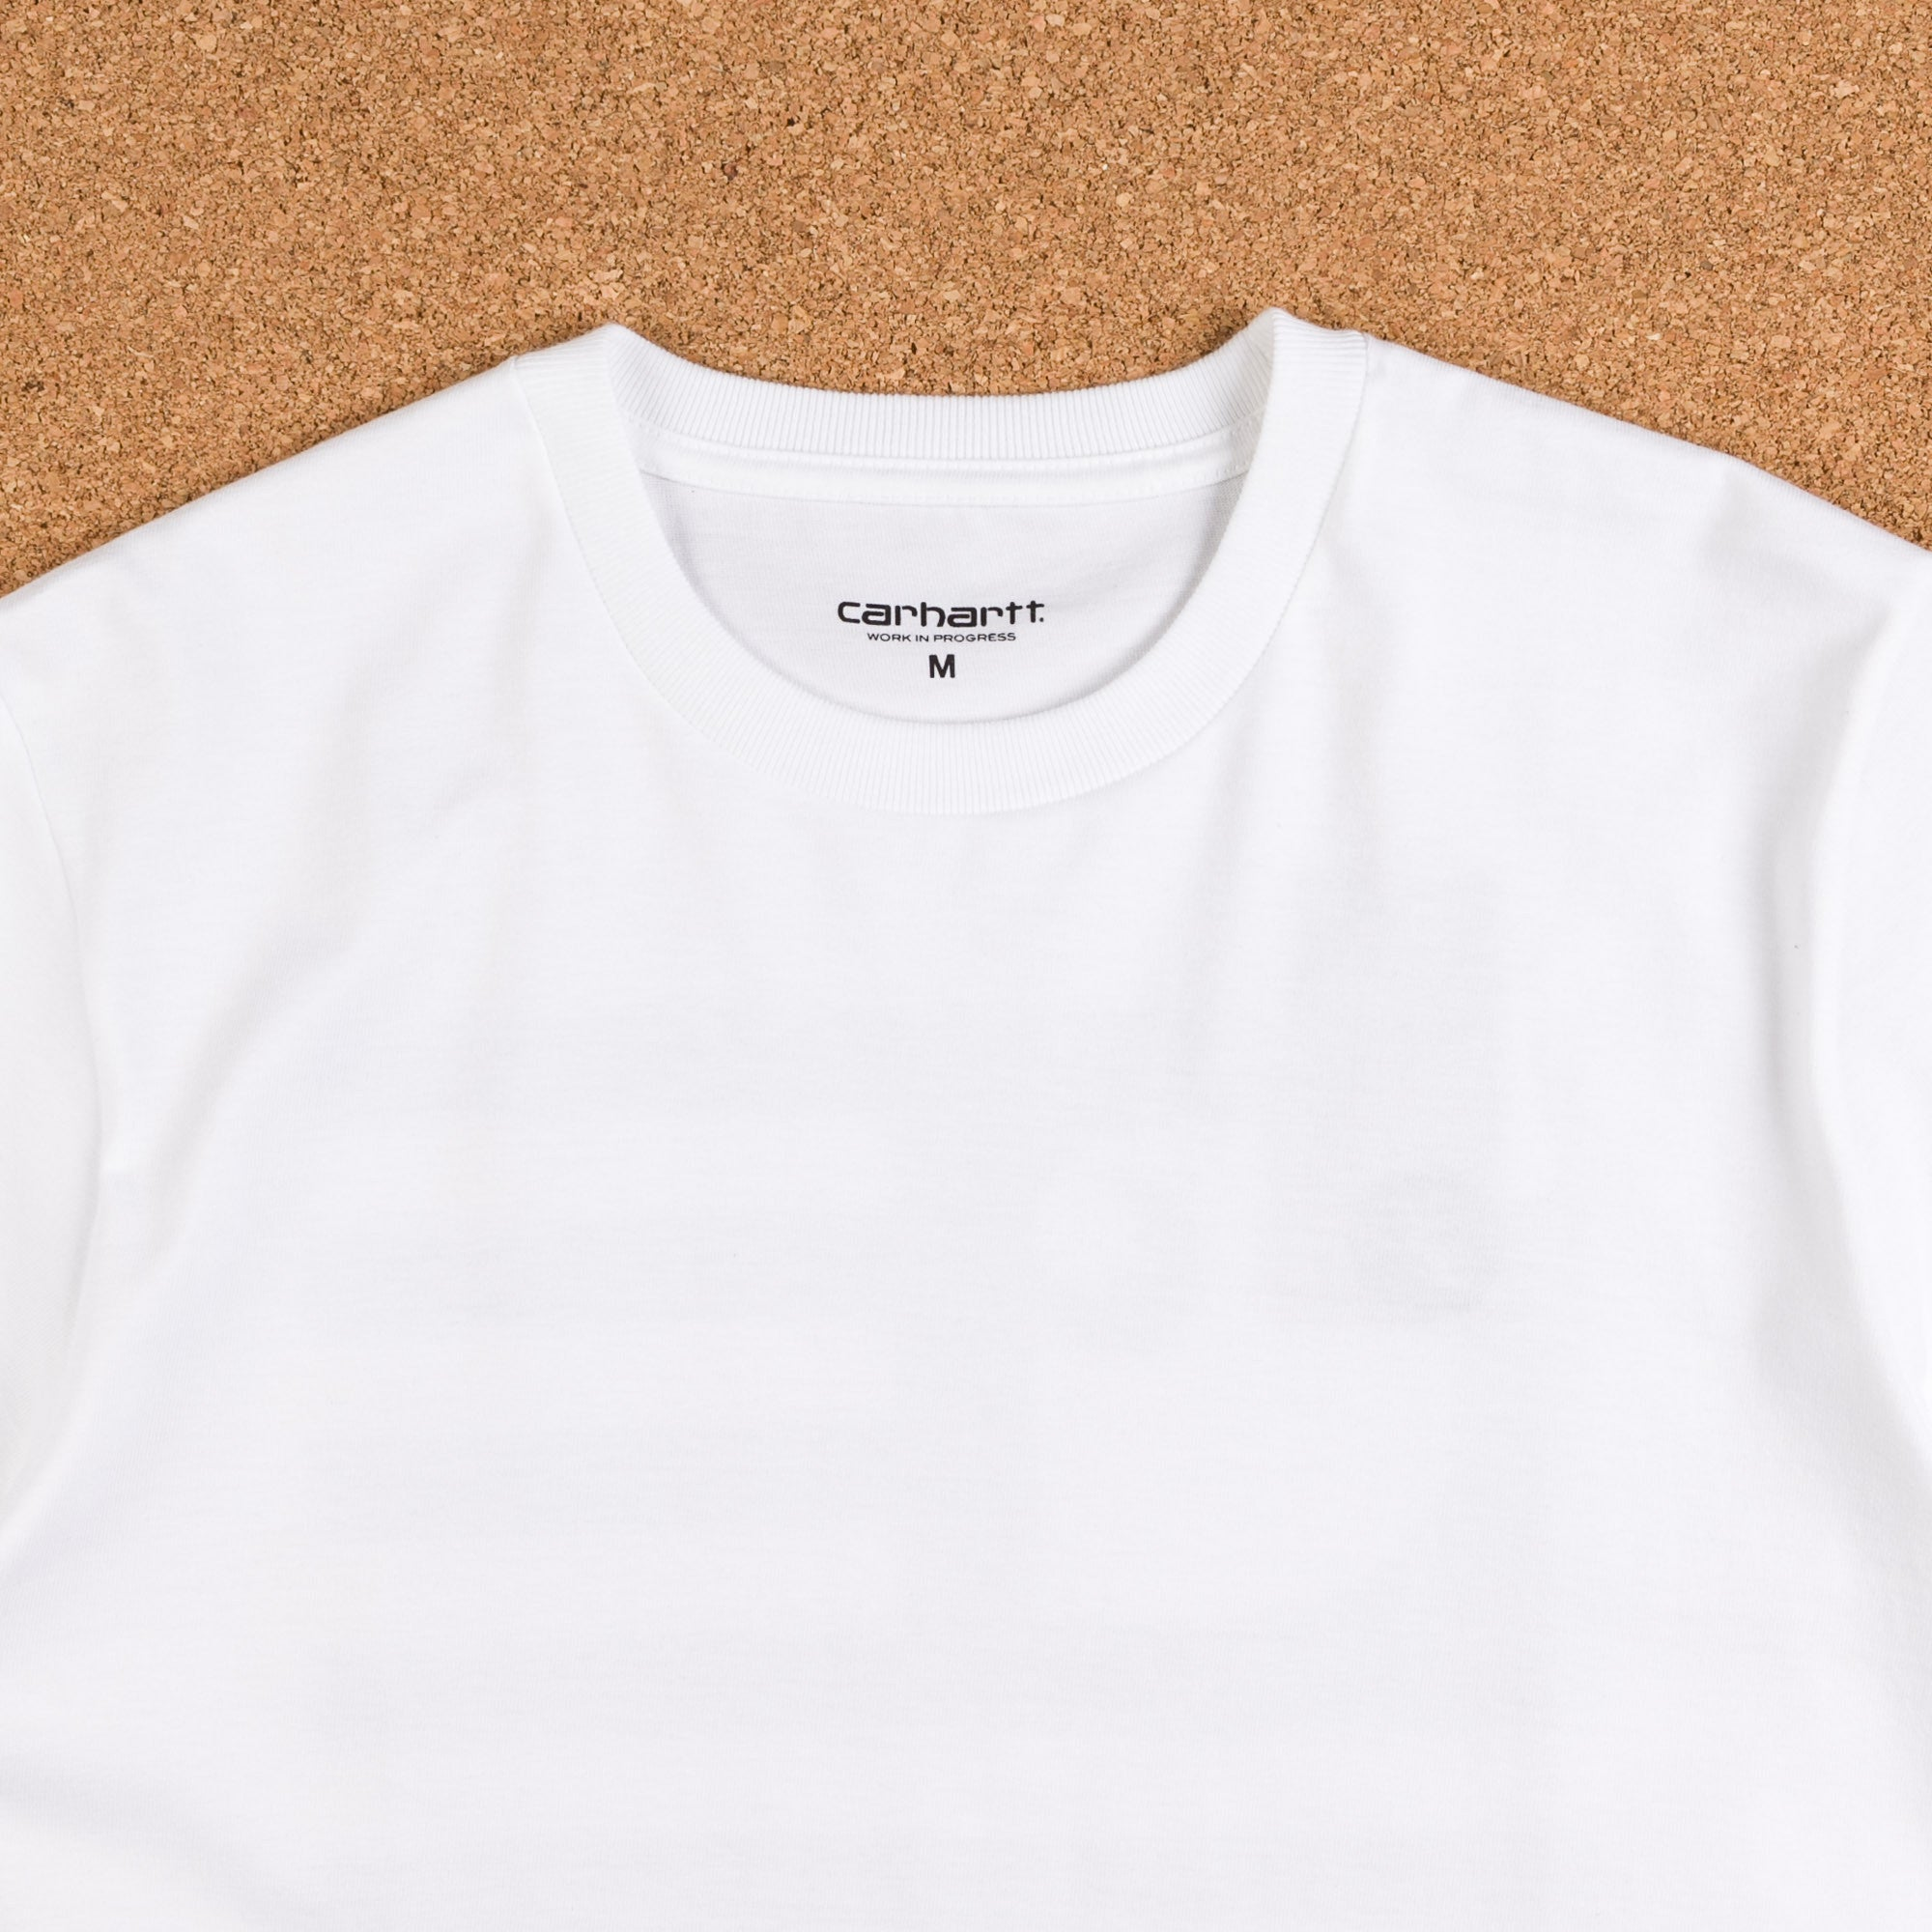 Carhartt State T-Shirt - White / Black